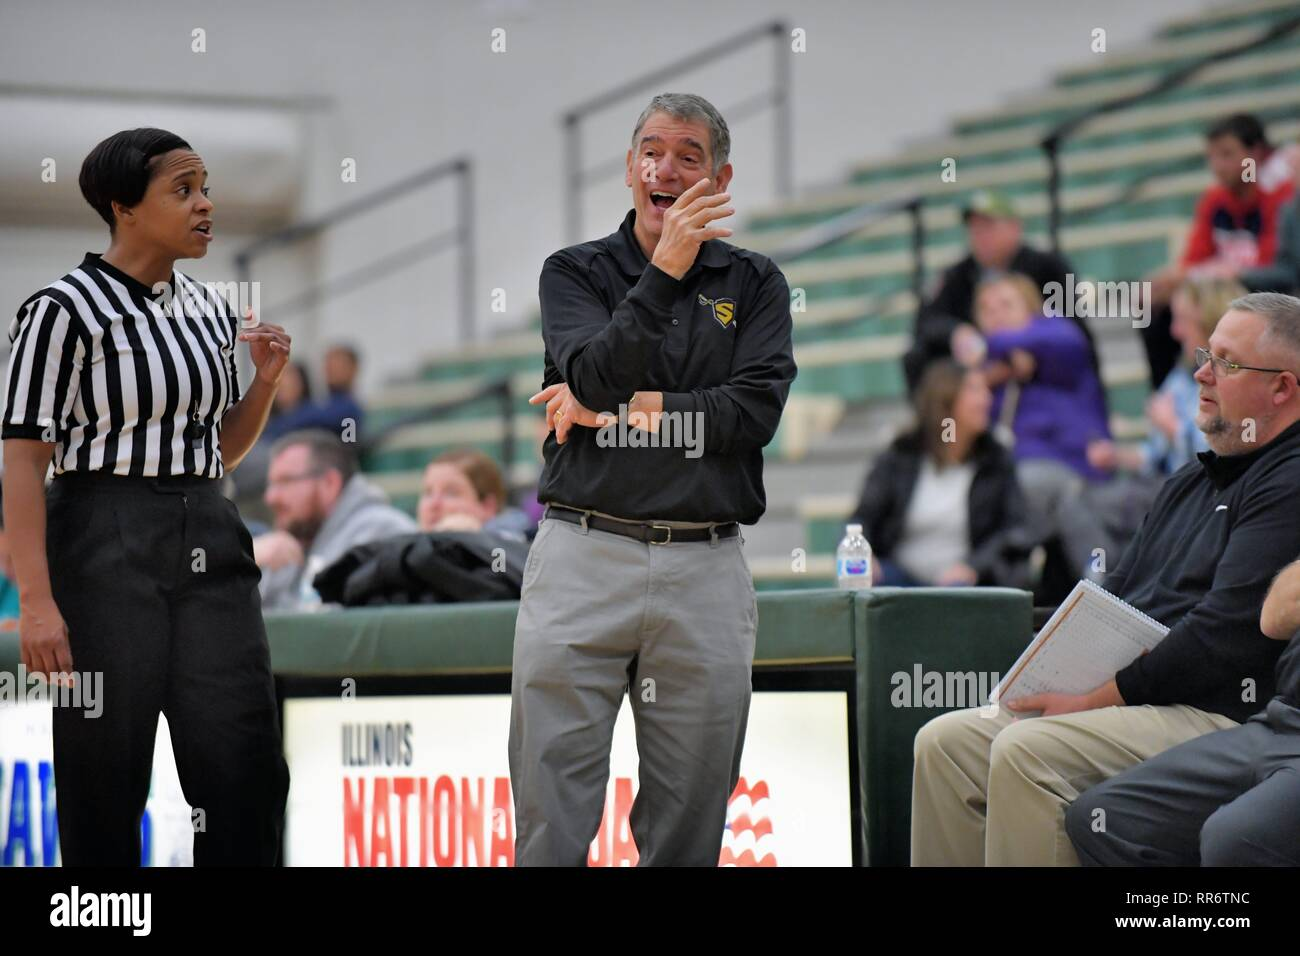 Head coach having an animated discussion with an official after disagreeing with a call. USA. Stock Photo